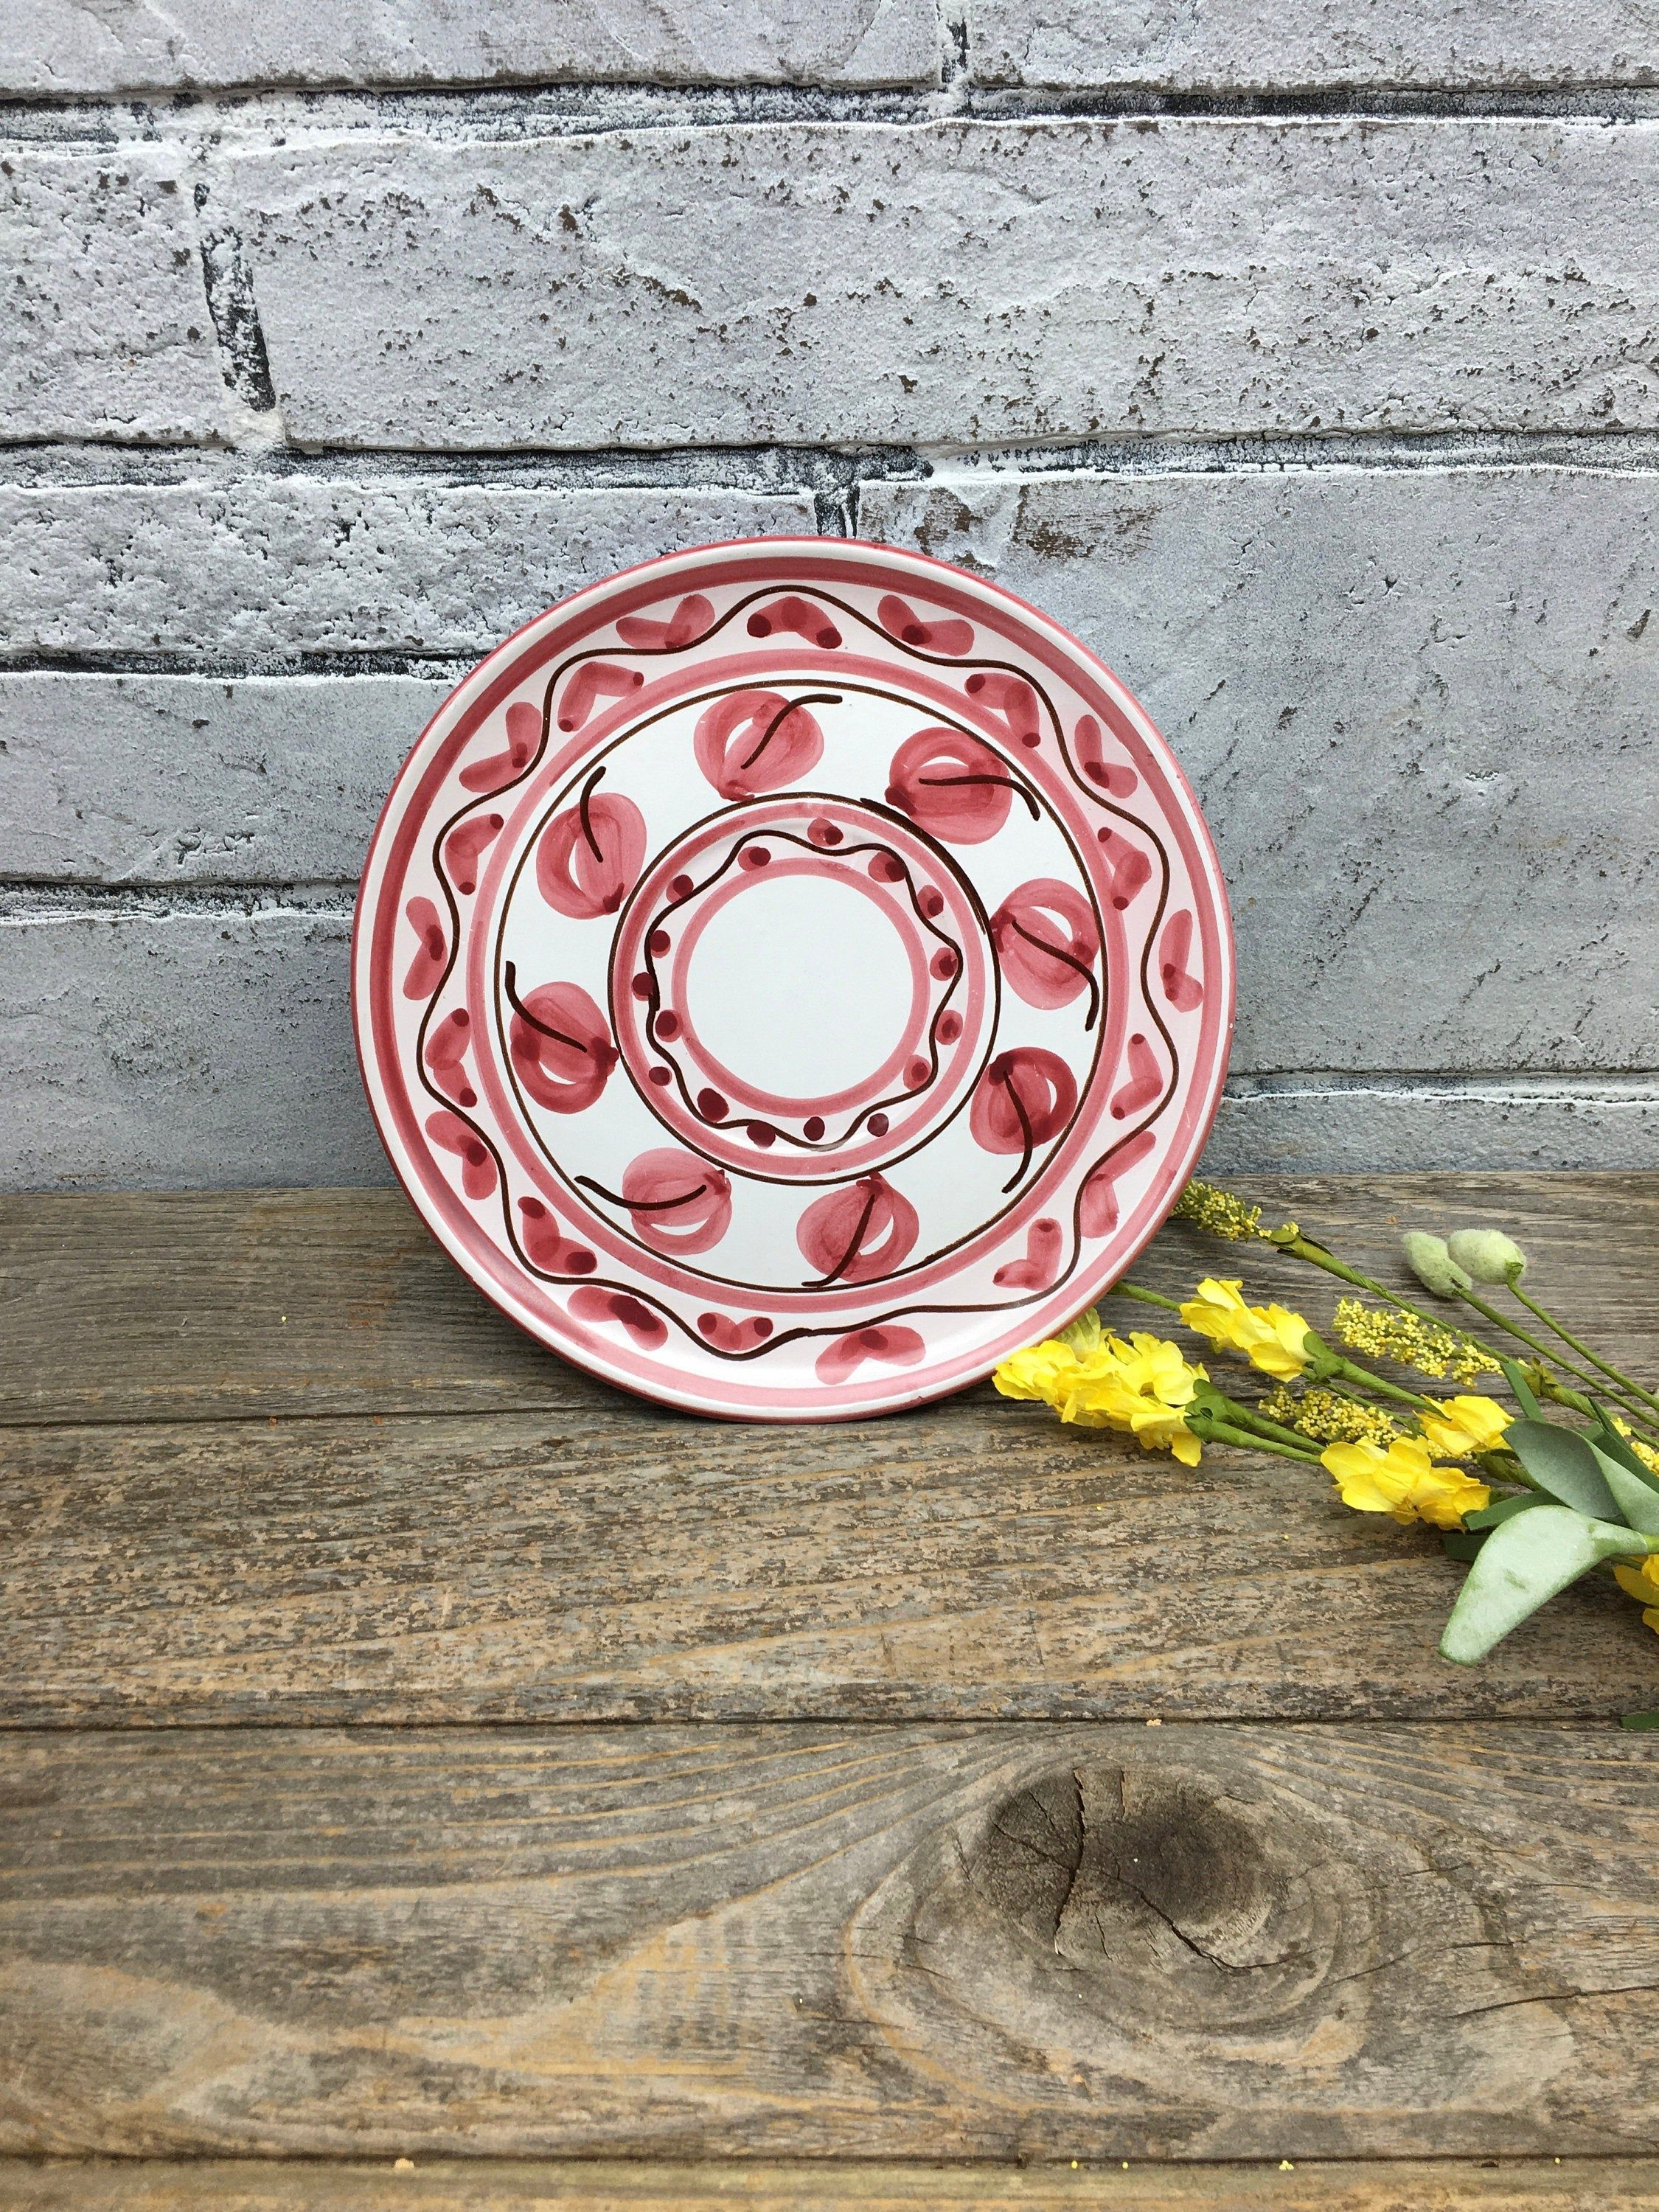 Italian Pottery Decorative Plate Hand Made / Hand Painted Pink Rim Signed & Numbered Plate Display Wall Decor stoneridgeattic